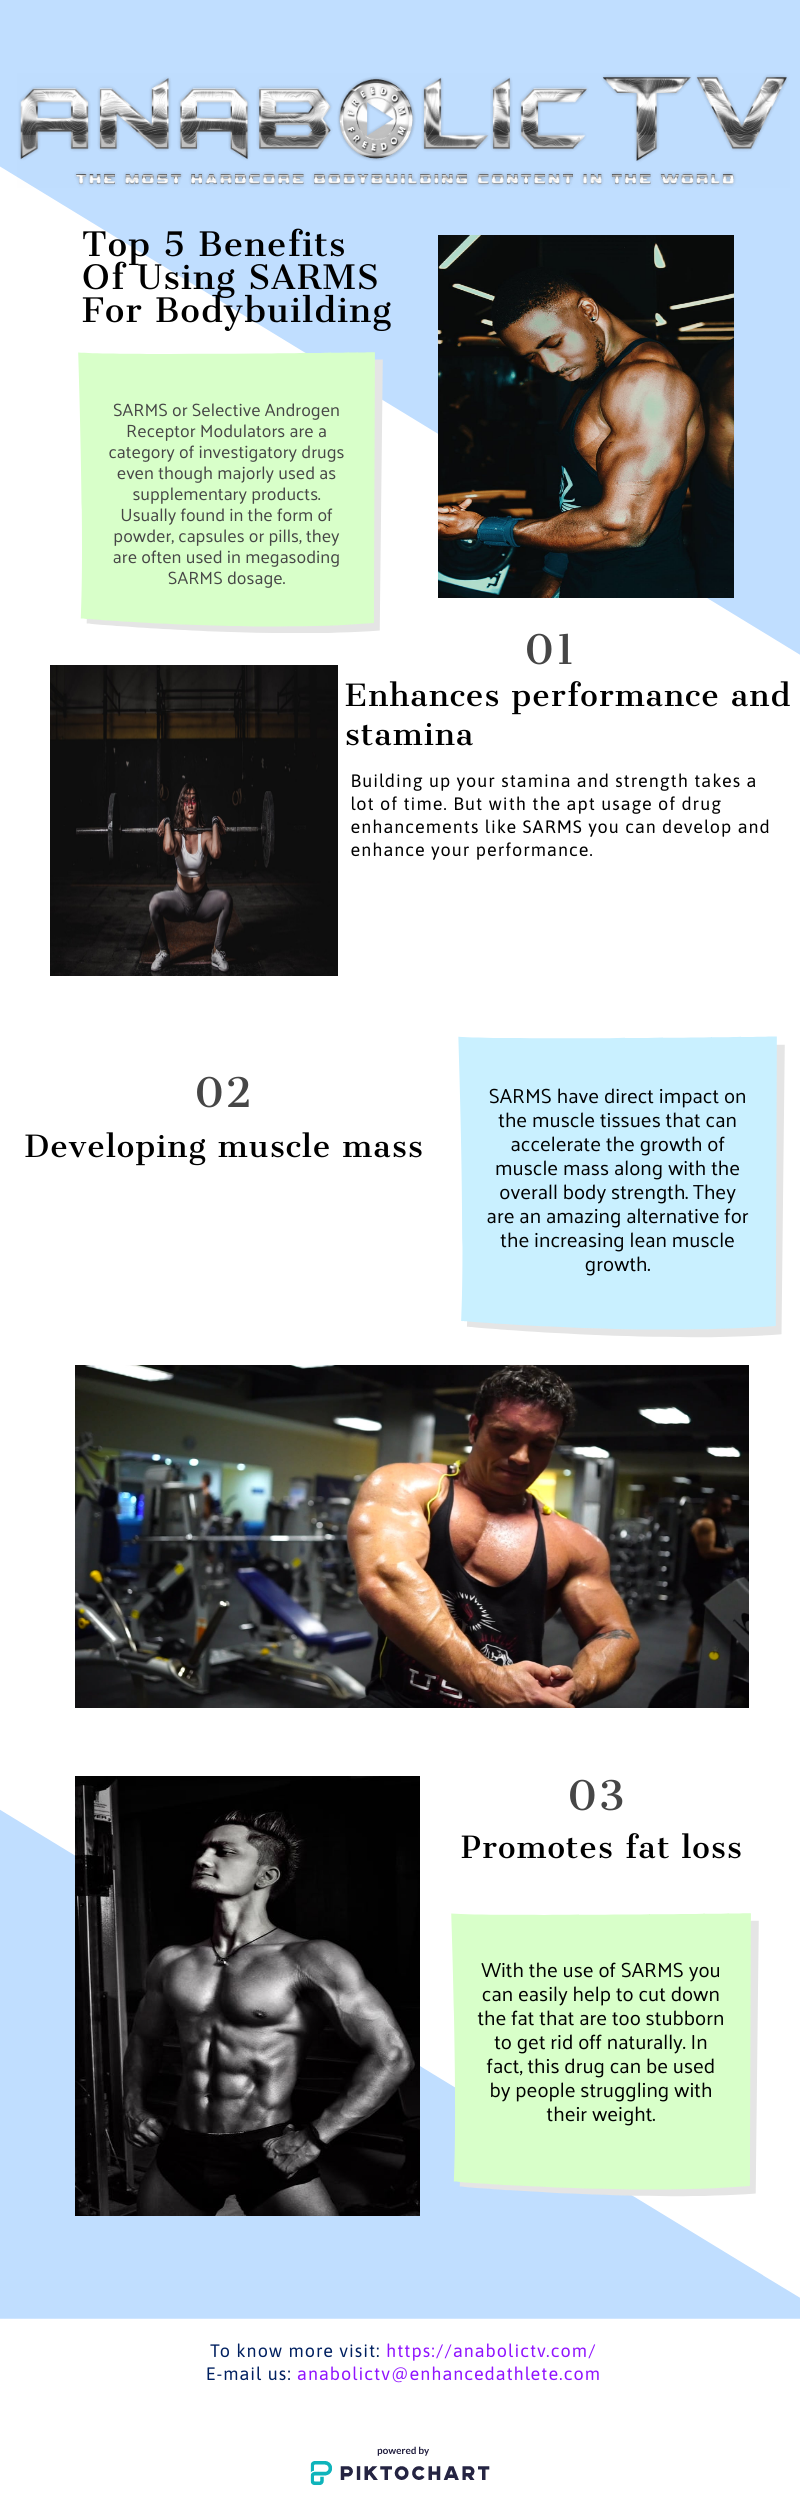 Top Benefits Of Using SARMS For Bodybuilding